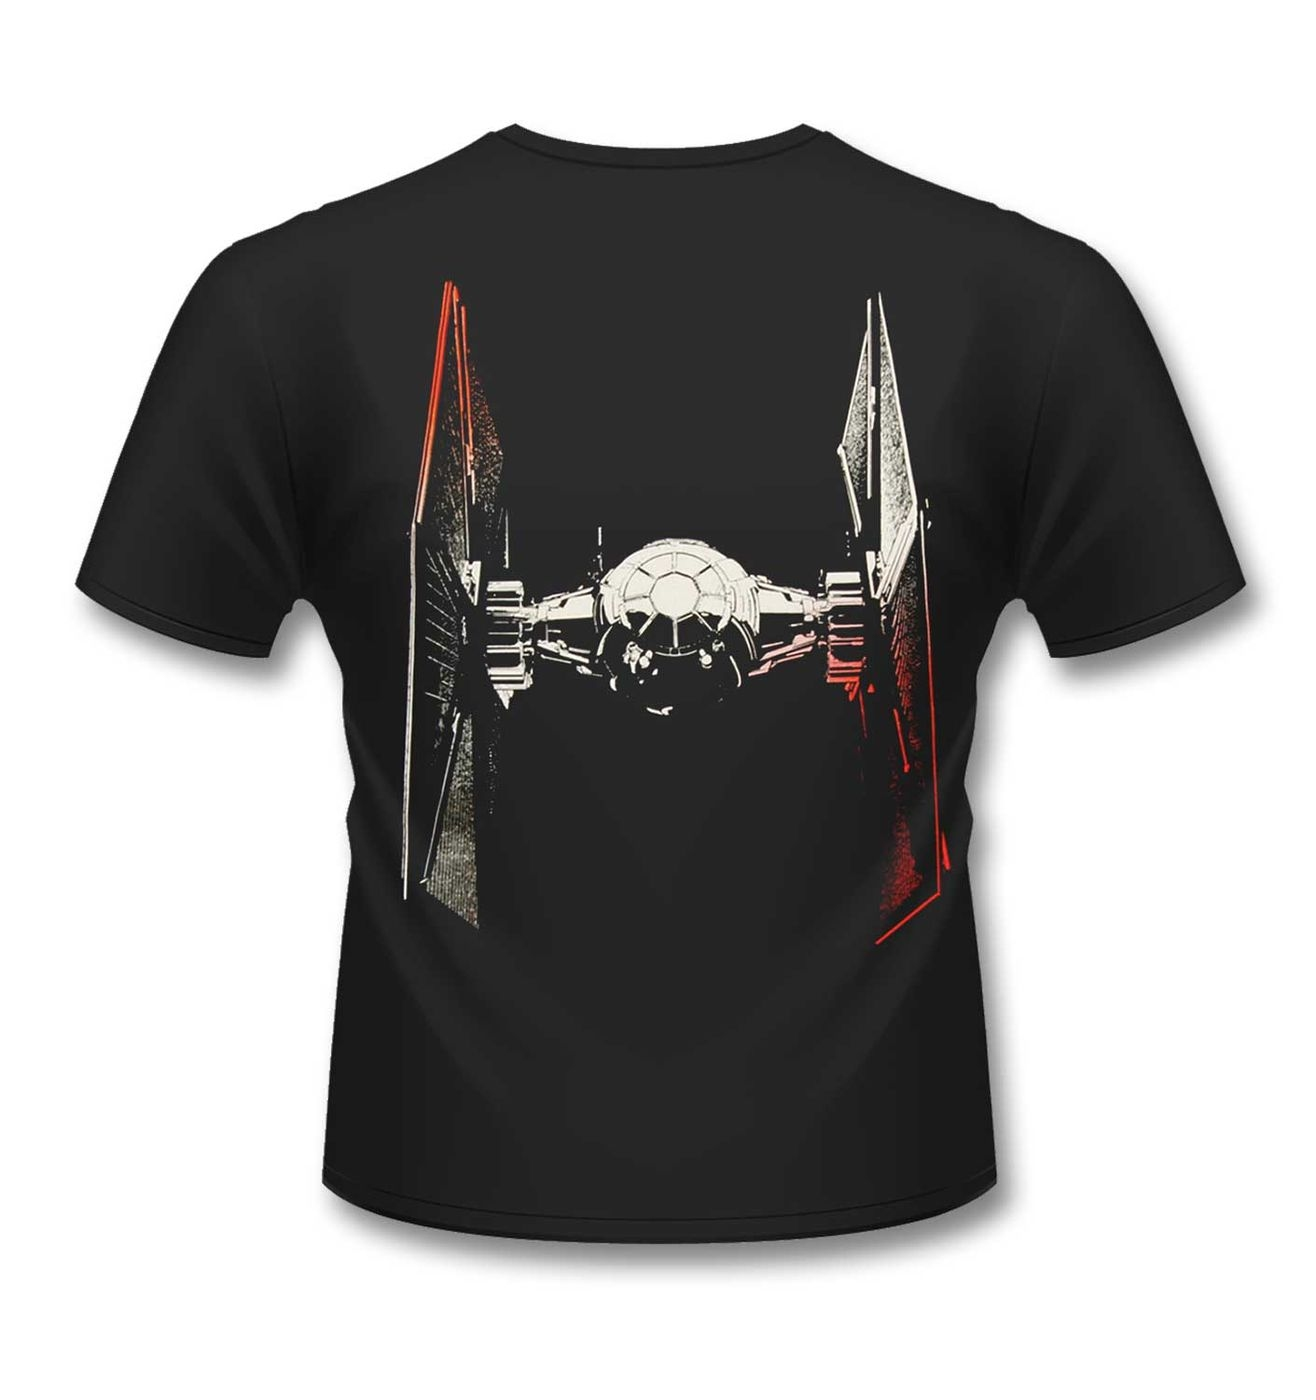 TIE-Fighter t-shirt